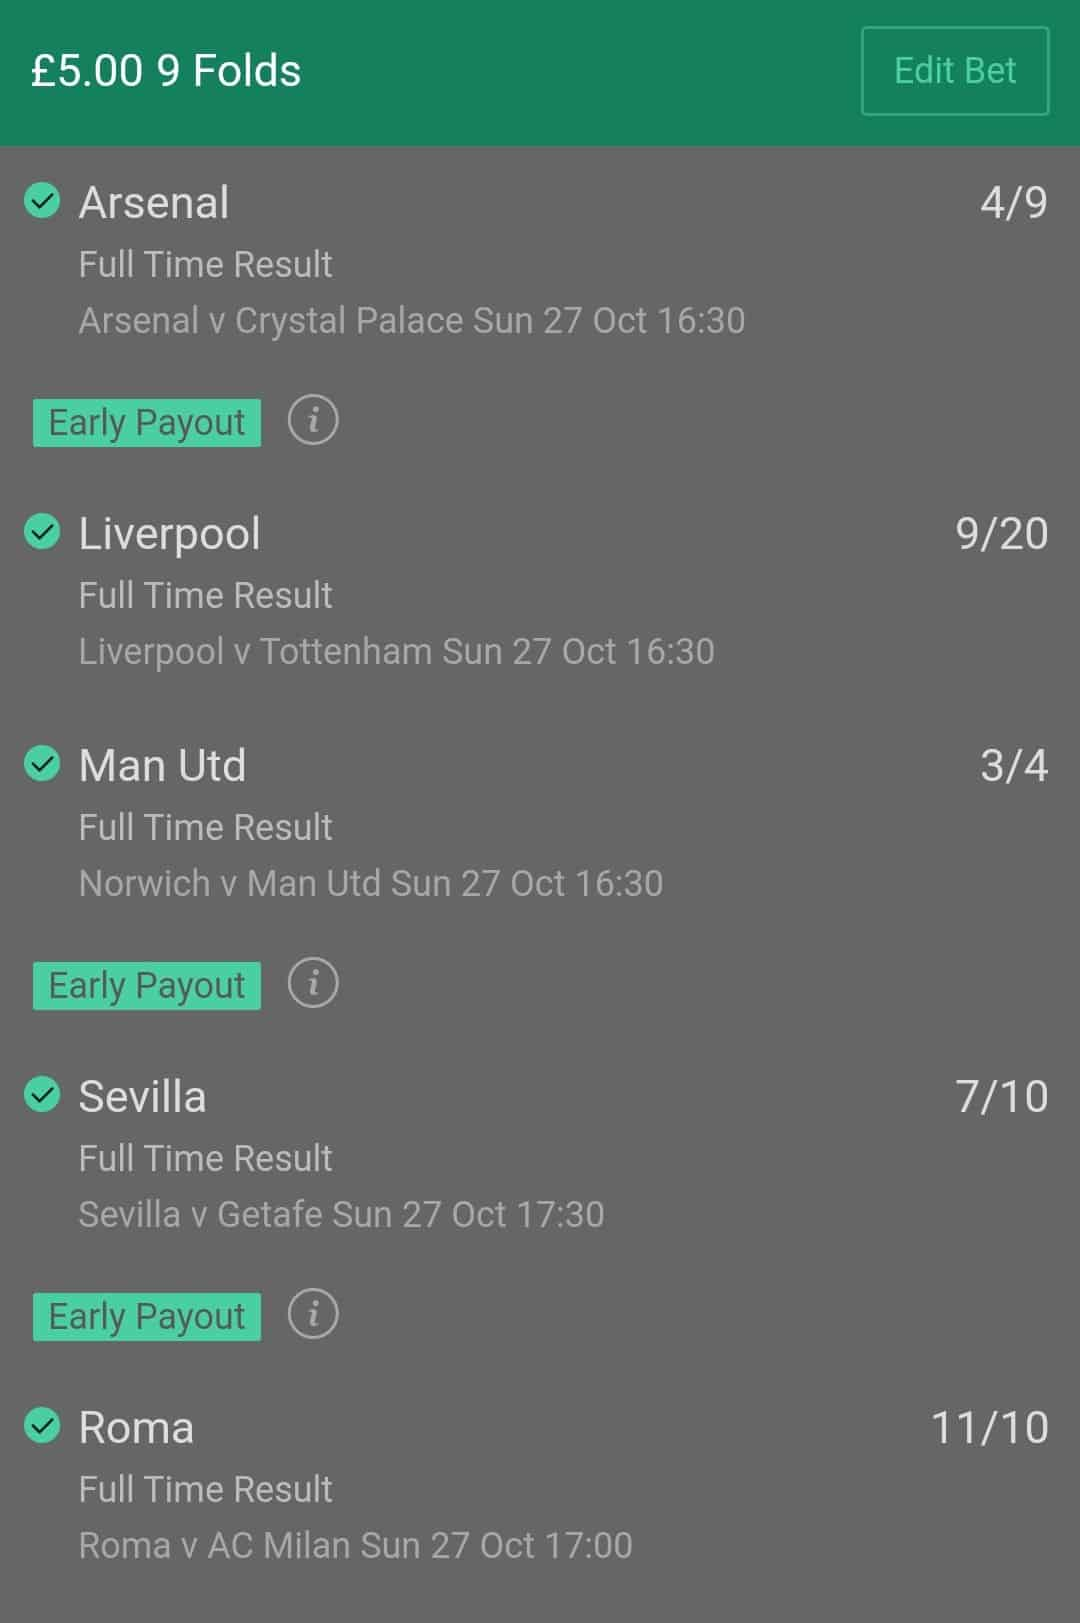 bet365 early pauout